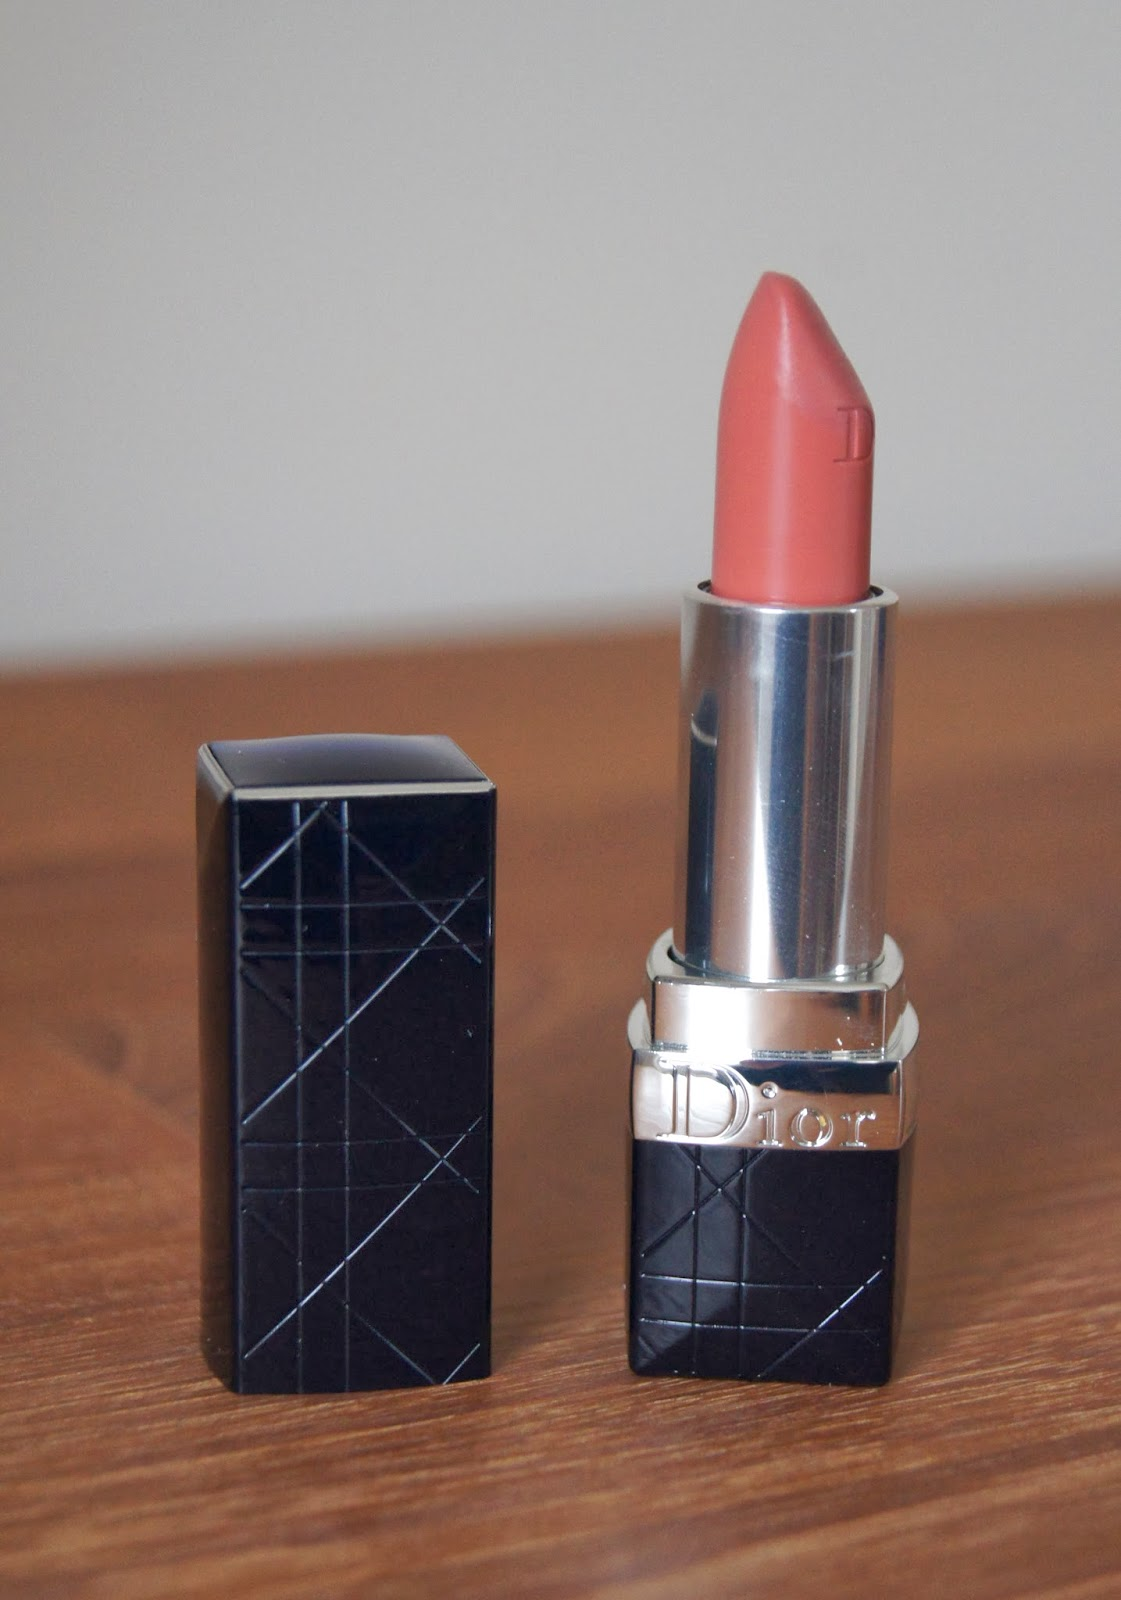 rouge dior nude lipstick lip blush 169 grege review